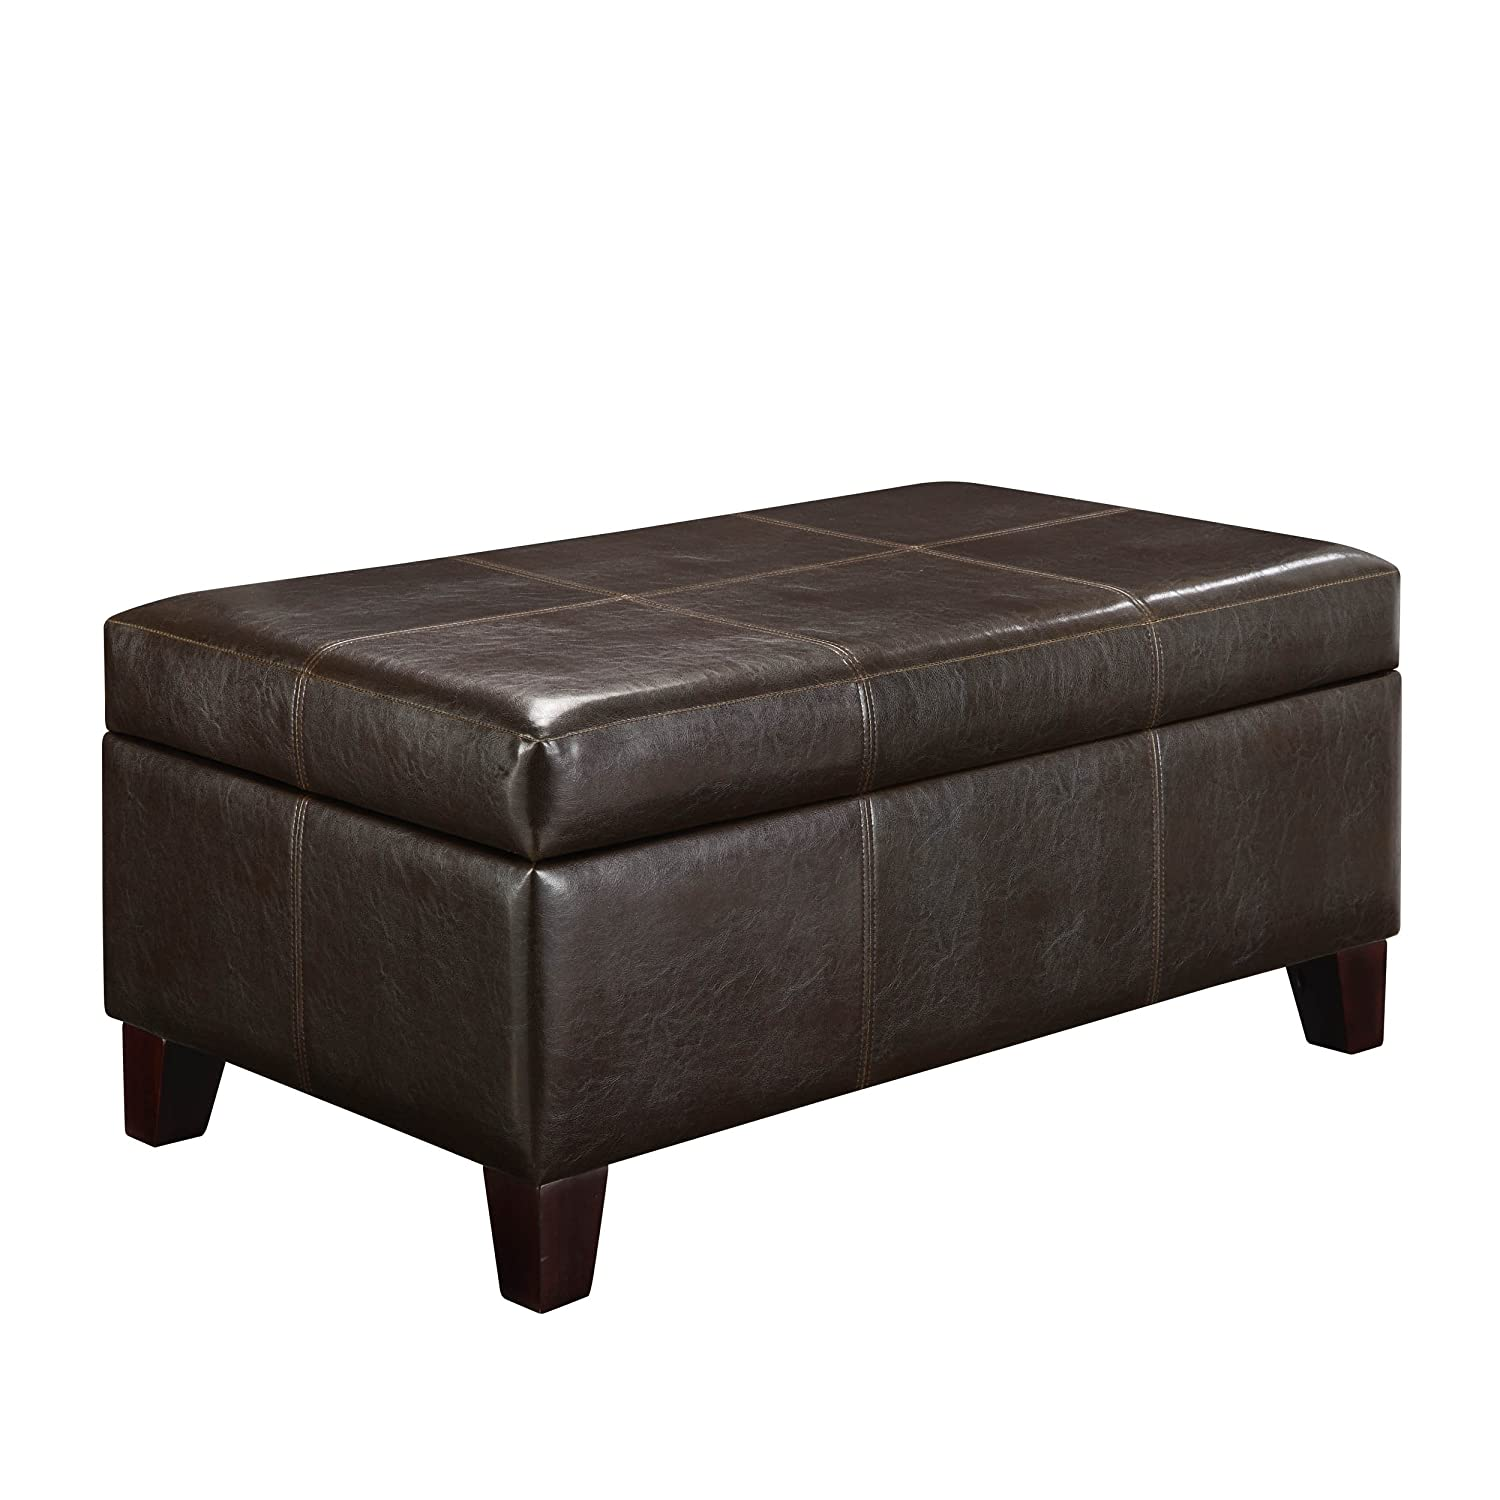 Dorel Living Storage Ottoman $...